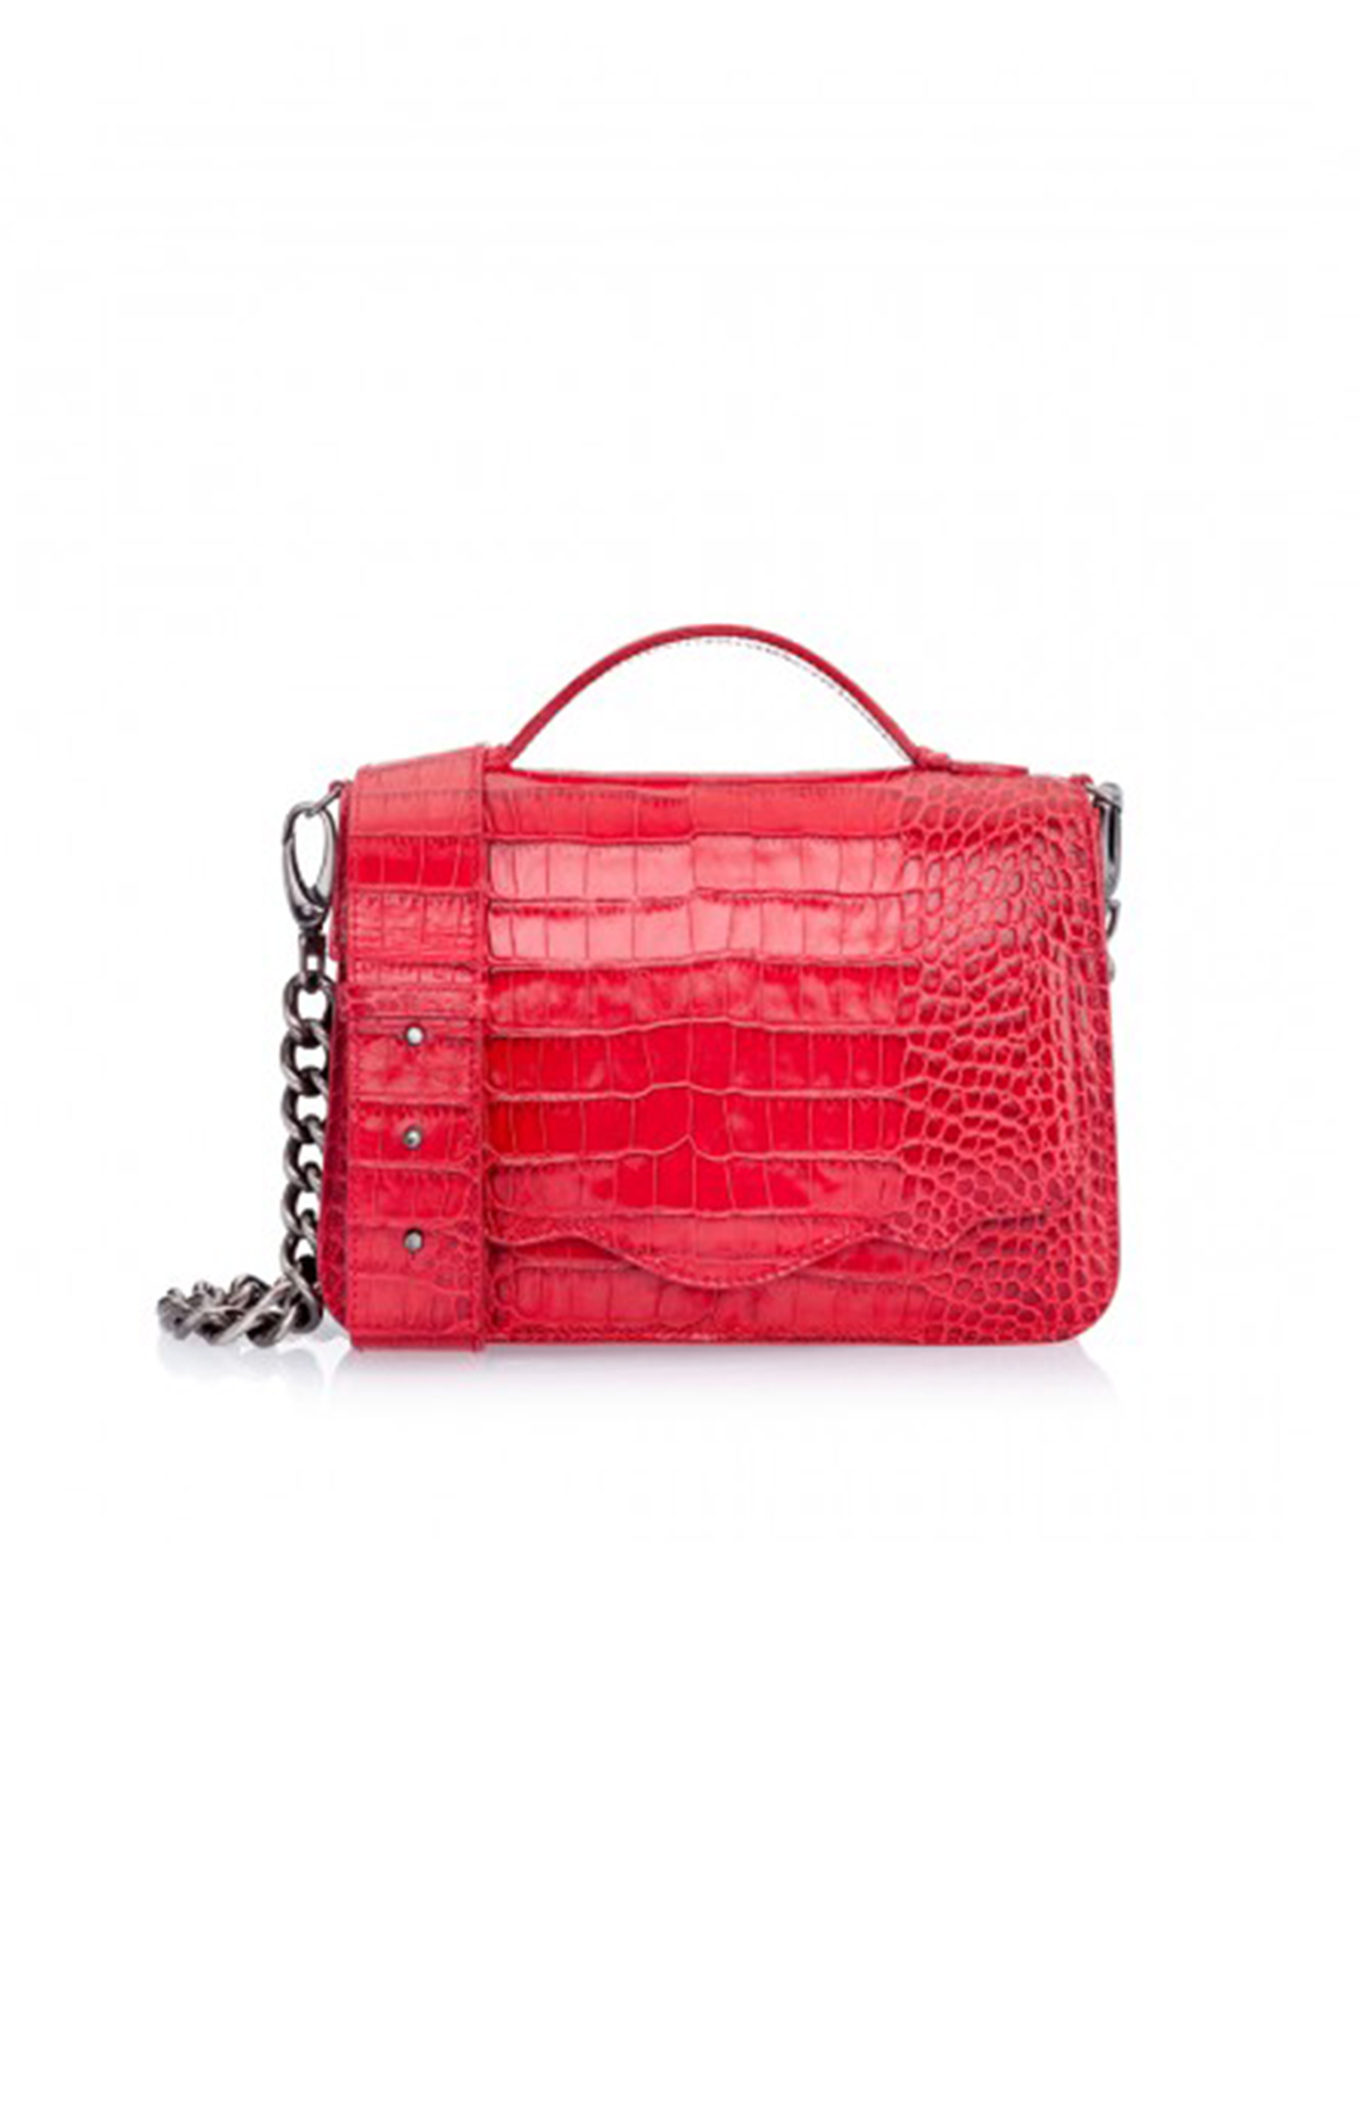 Thale Blanc <br>Spring 2017<br>audreyette nuvo croc red